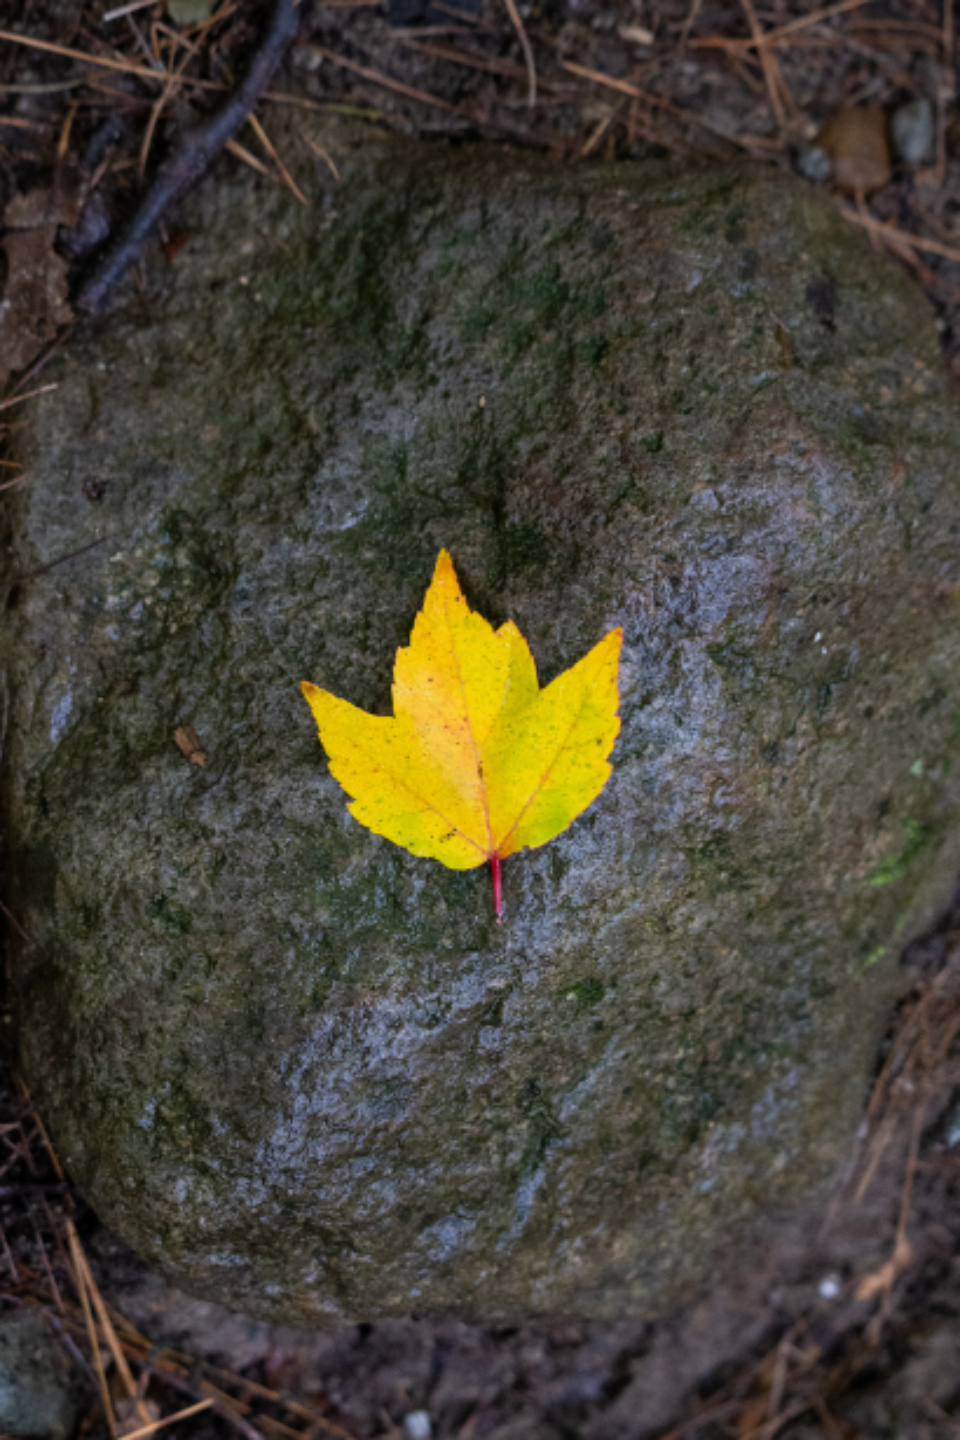 lone autumn leaf fall foliage trees rocks rain wet nature outdoors hiking yellow maple